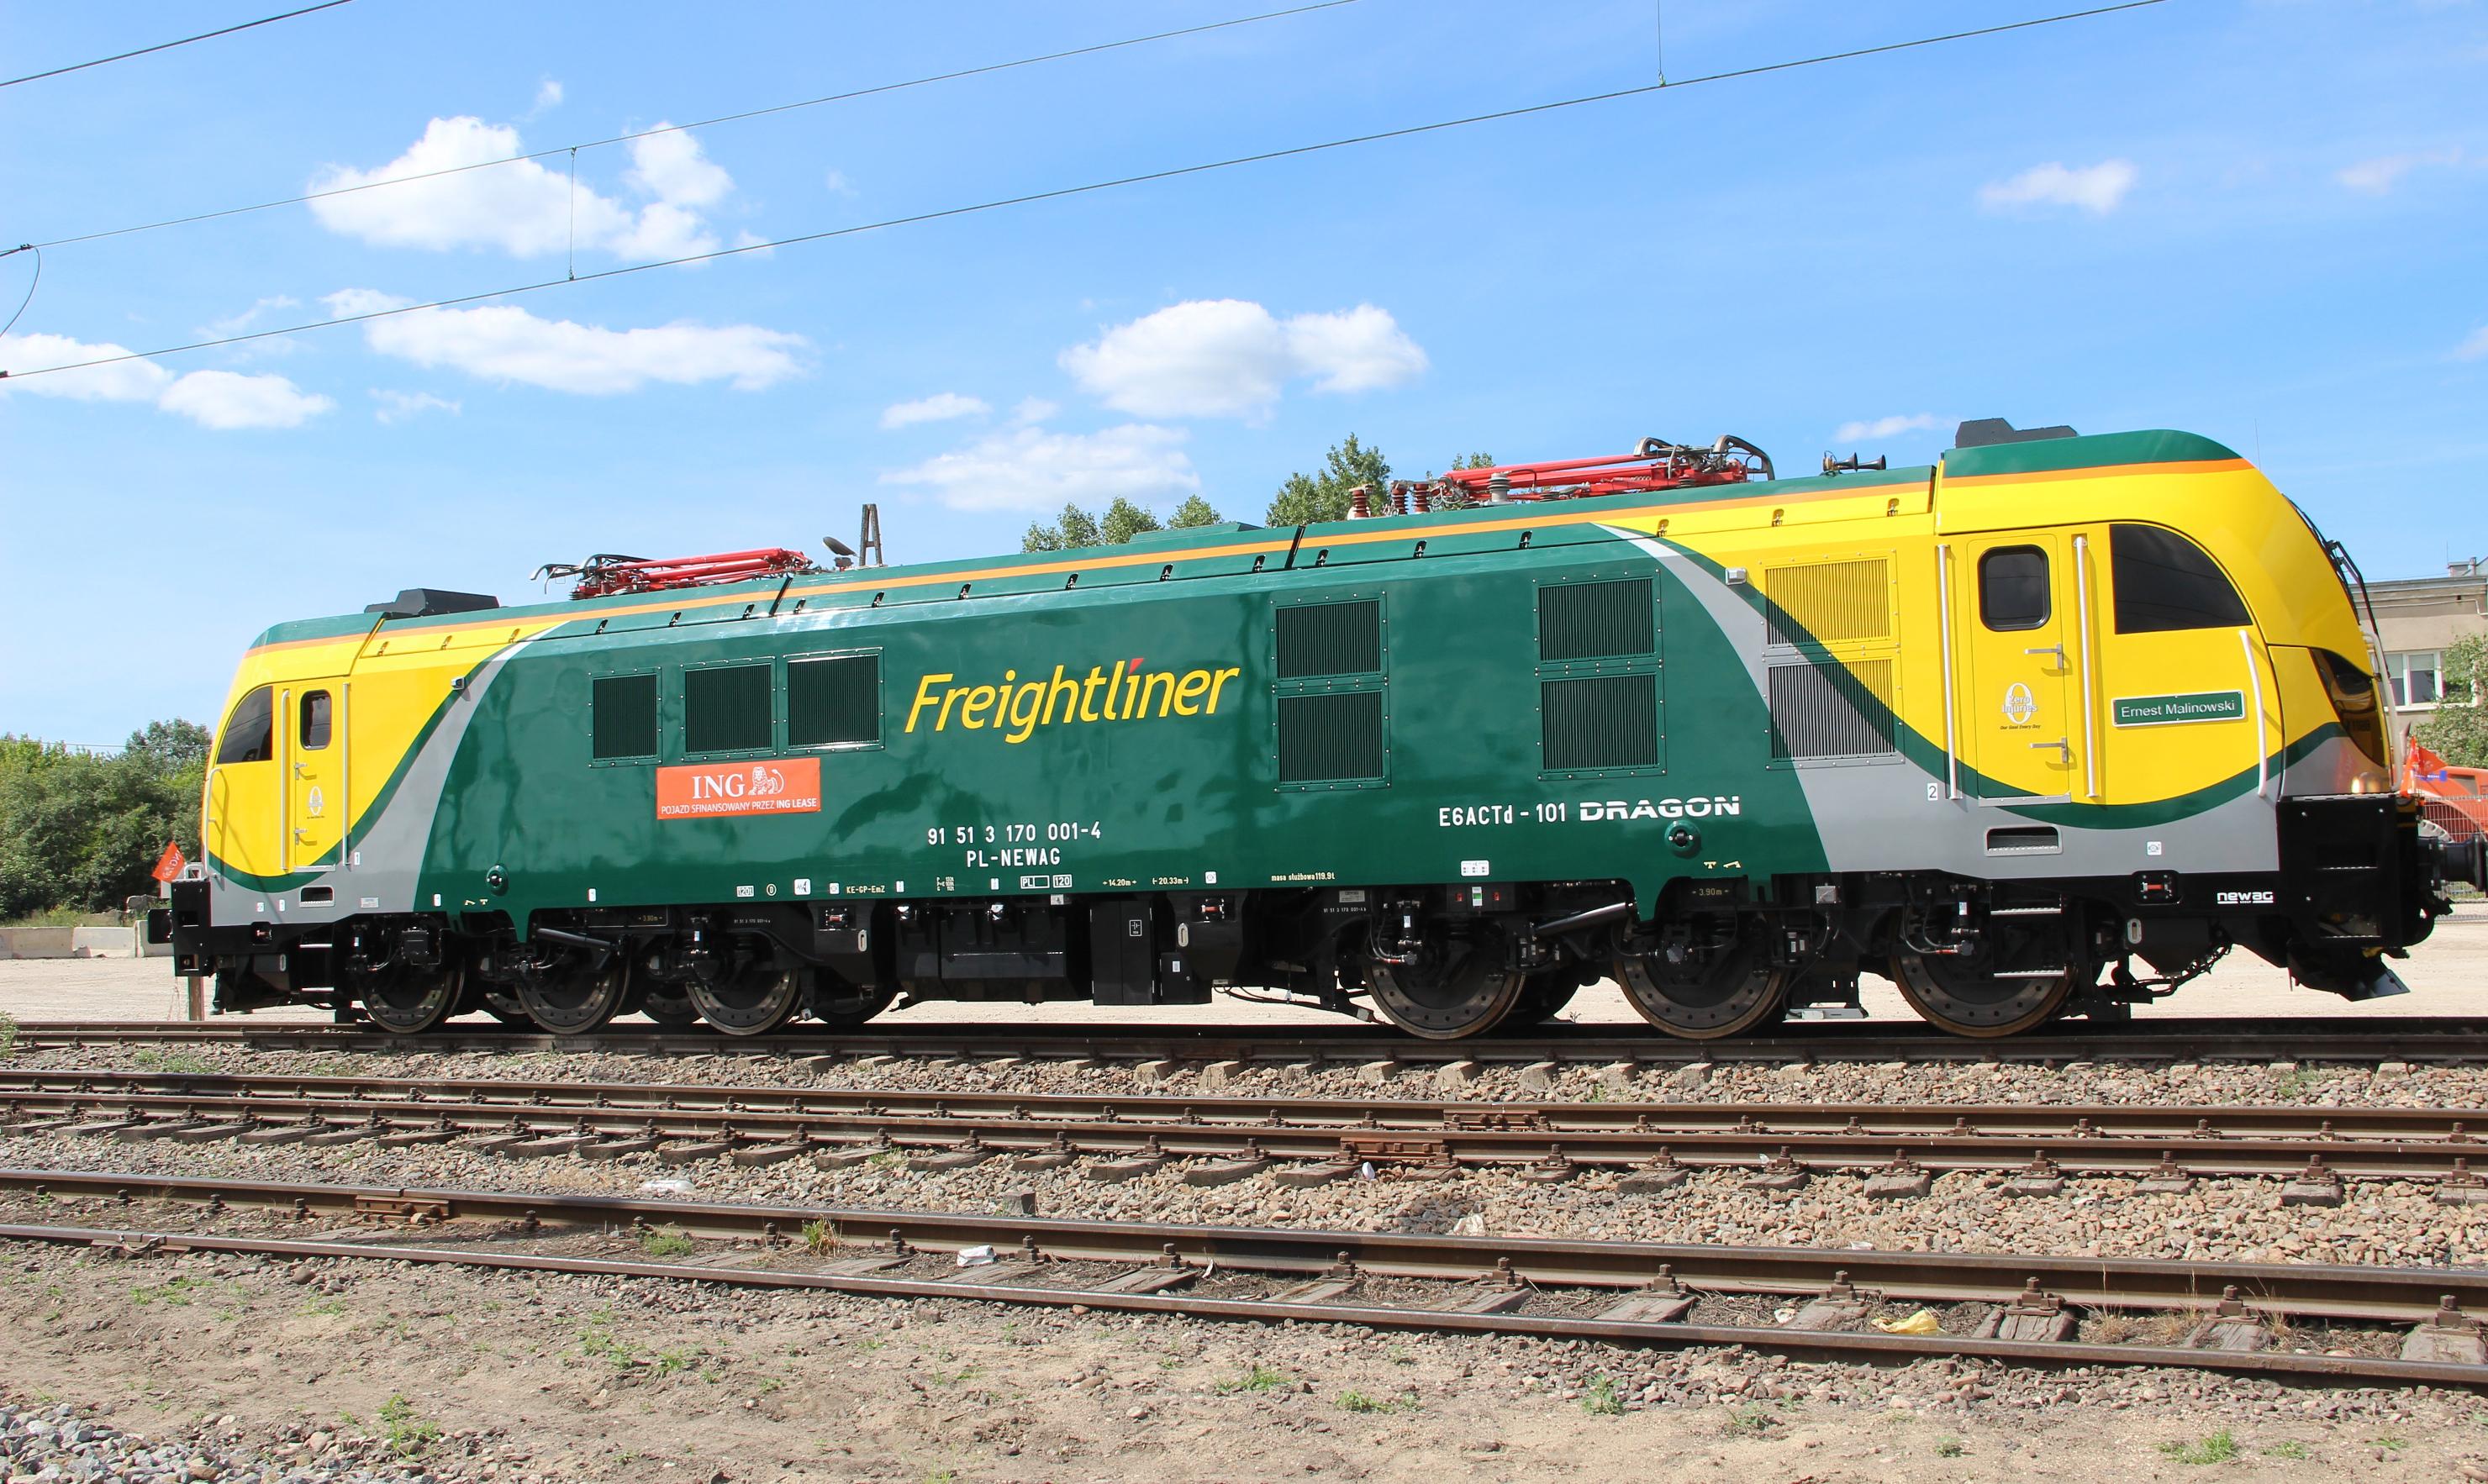 2007 - Freightliner Poland commences service